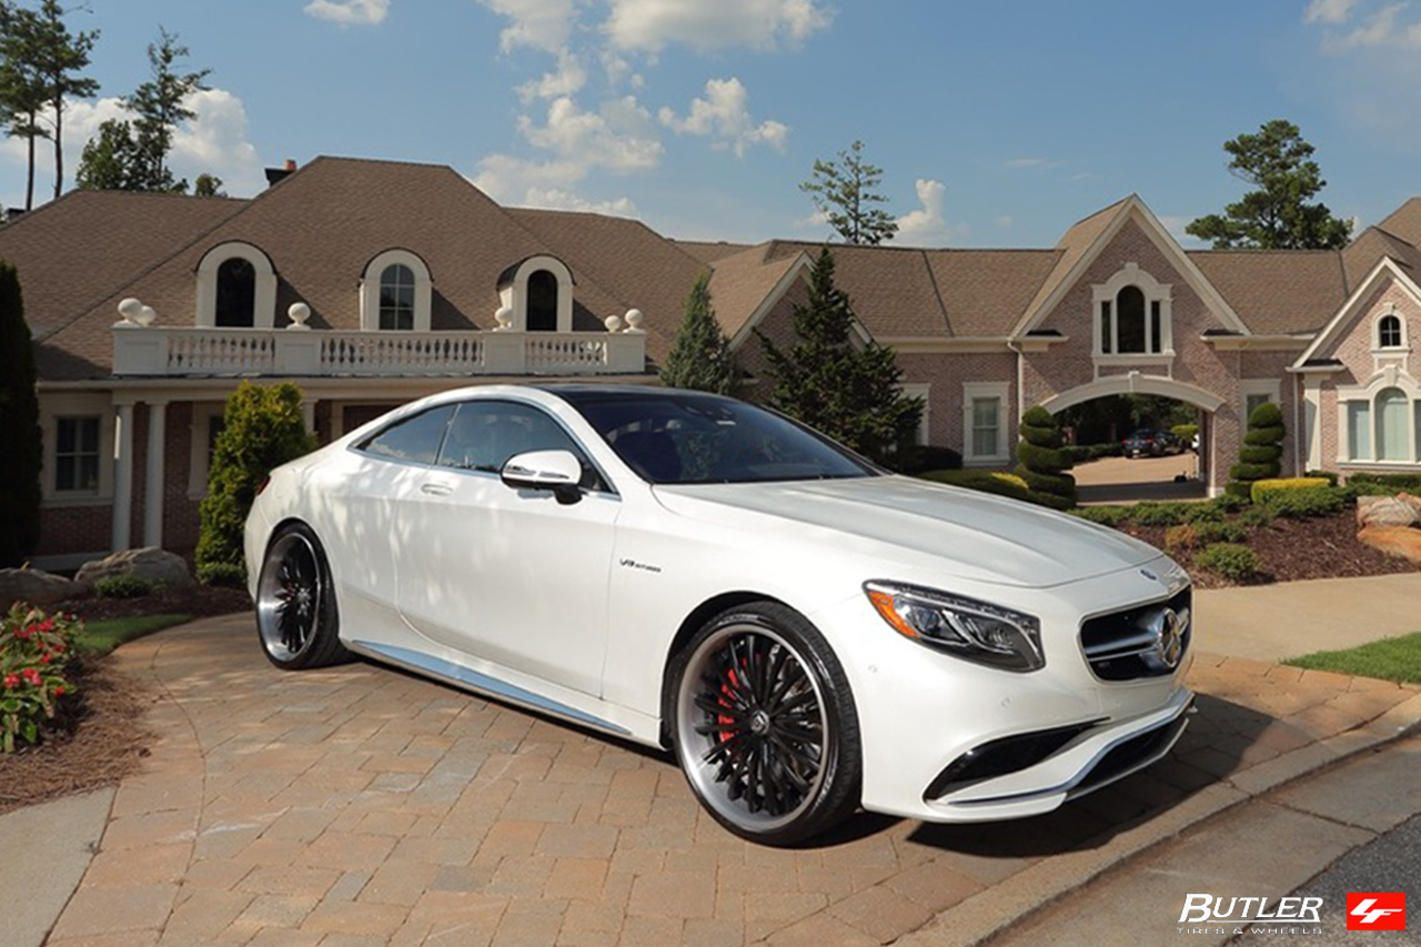 Lexani S63 AMG coupe Luxury cars, Luxury cars for sale